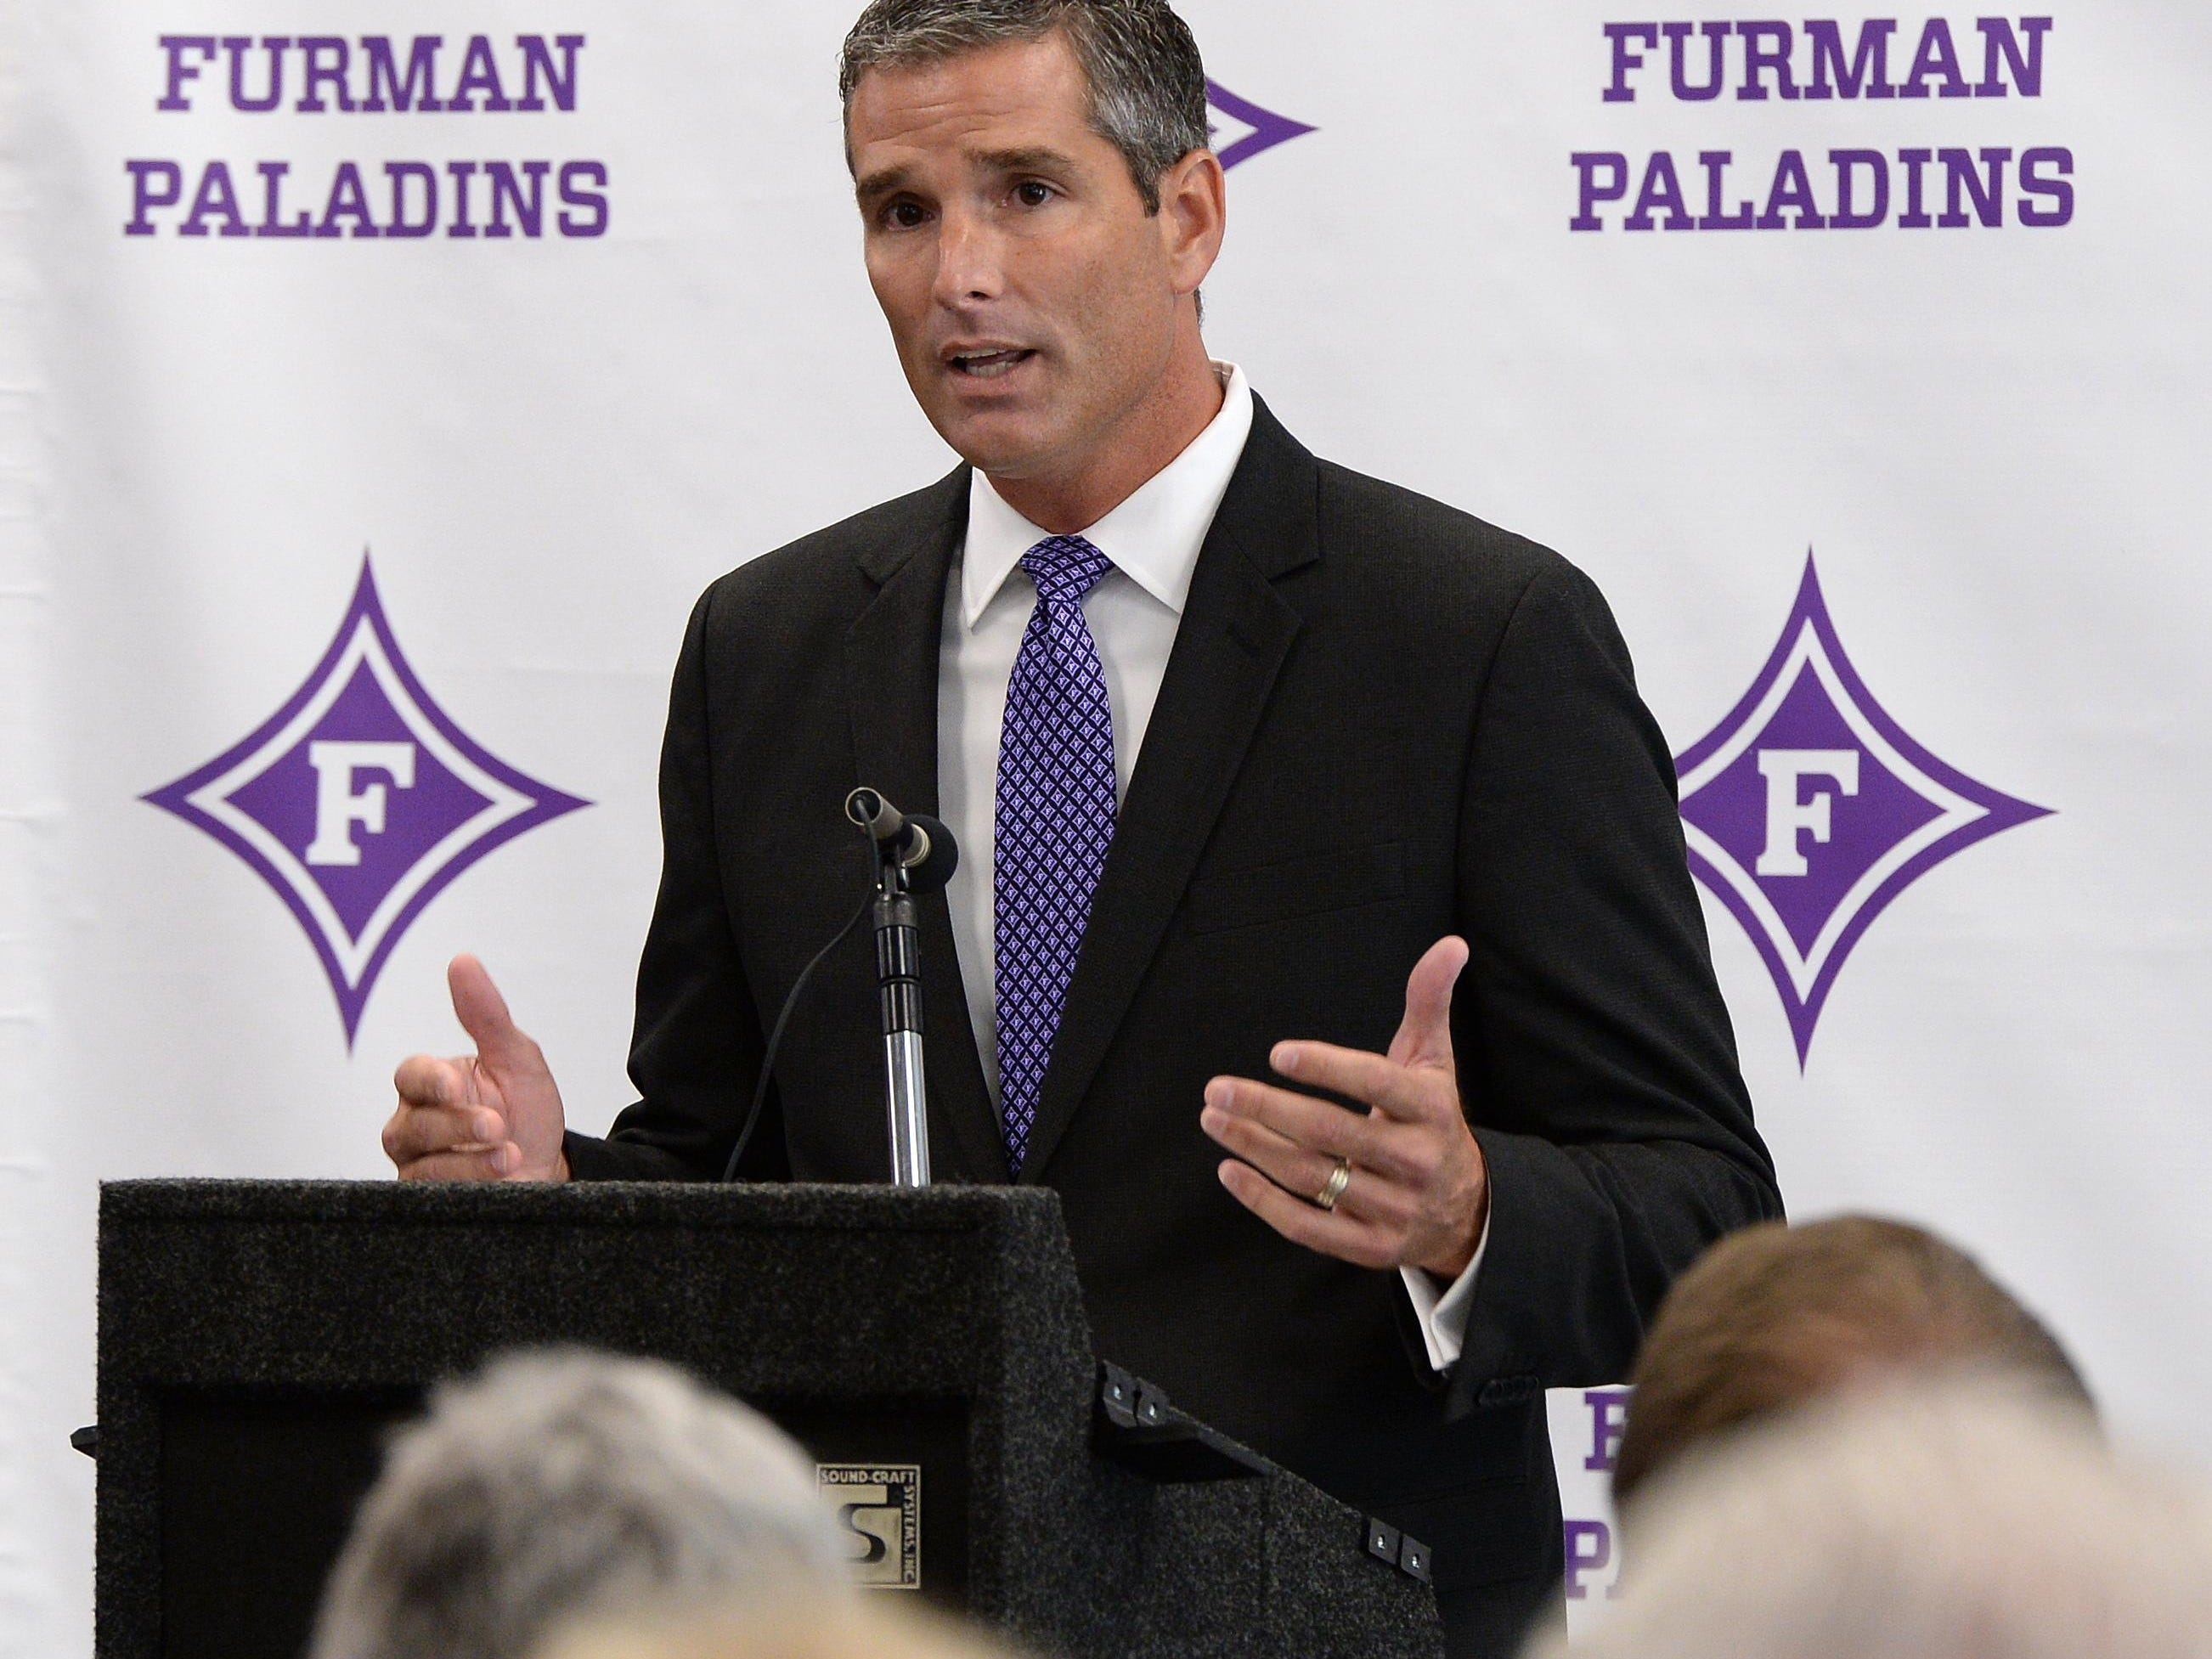 New Furman athletic director Mike Buddie is introduced during a press conference Wednesday, July 29, 2015 at Furman